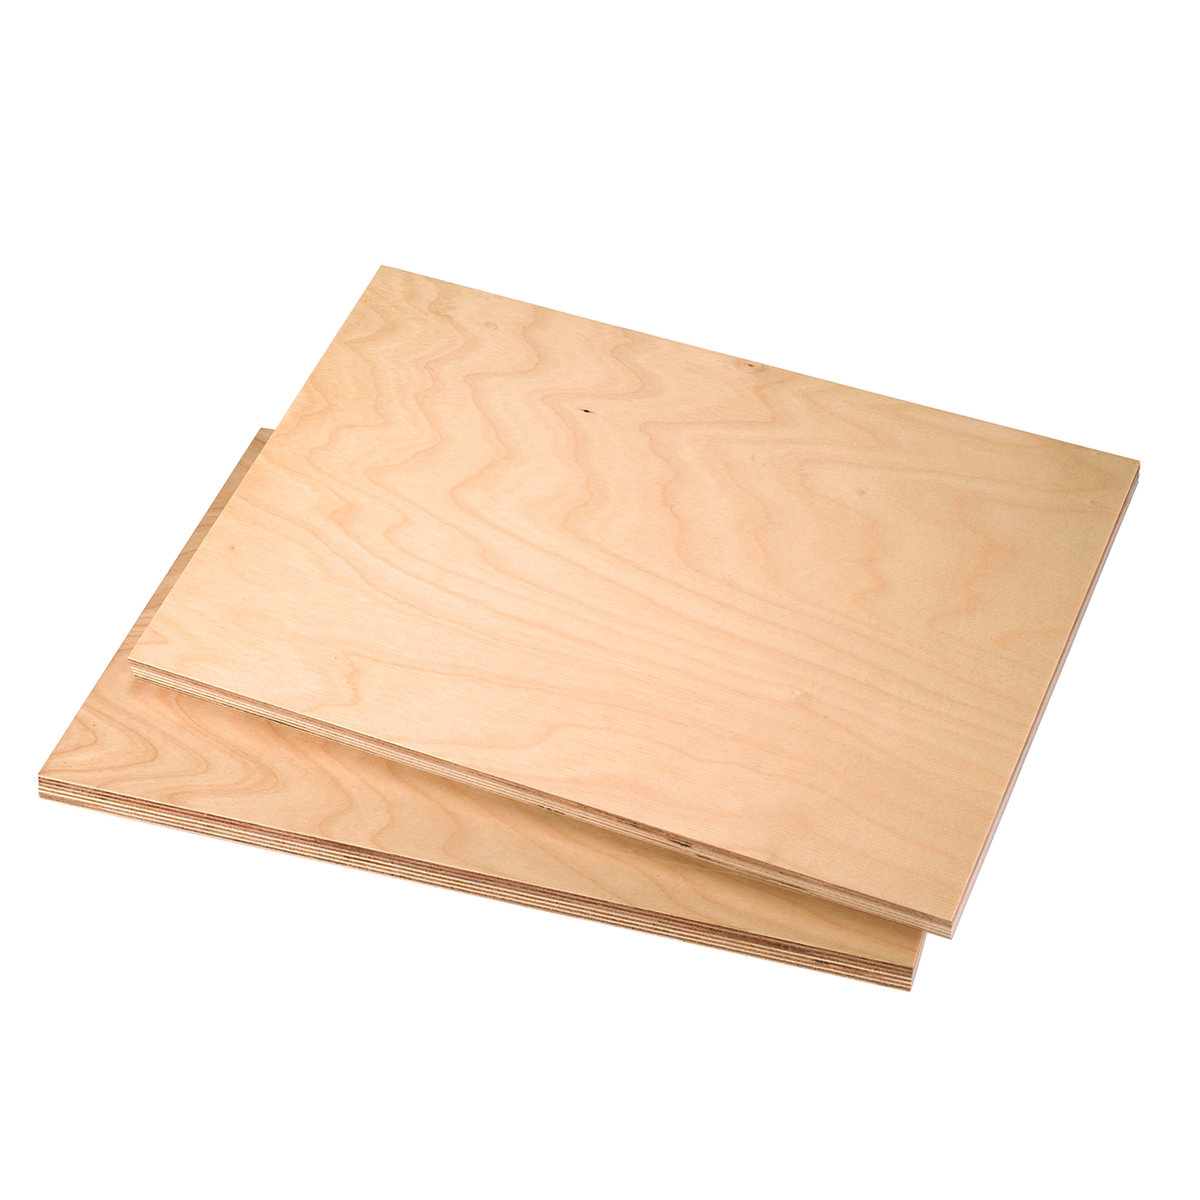 12 Baltic Birch Plywood